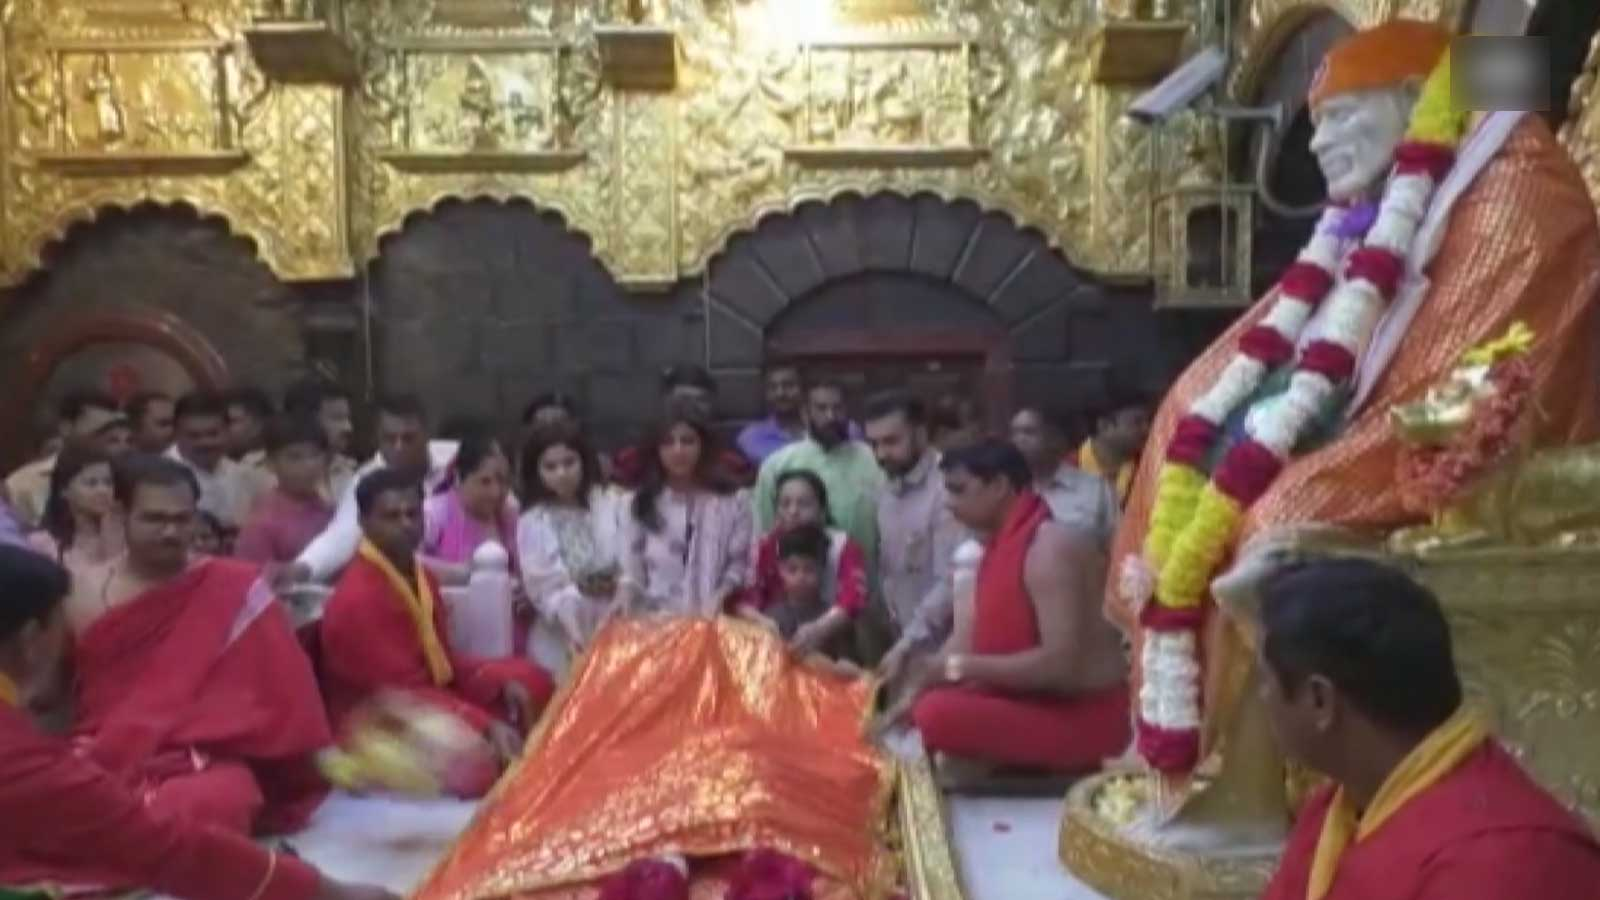 shilpa-shetty-kundra-offers-prayers-at-shirdi-sai-baba-temple-with-hubby-raj-kundra-and-son-viaan